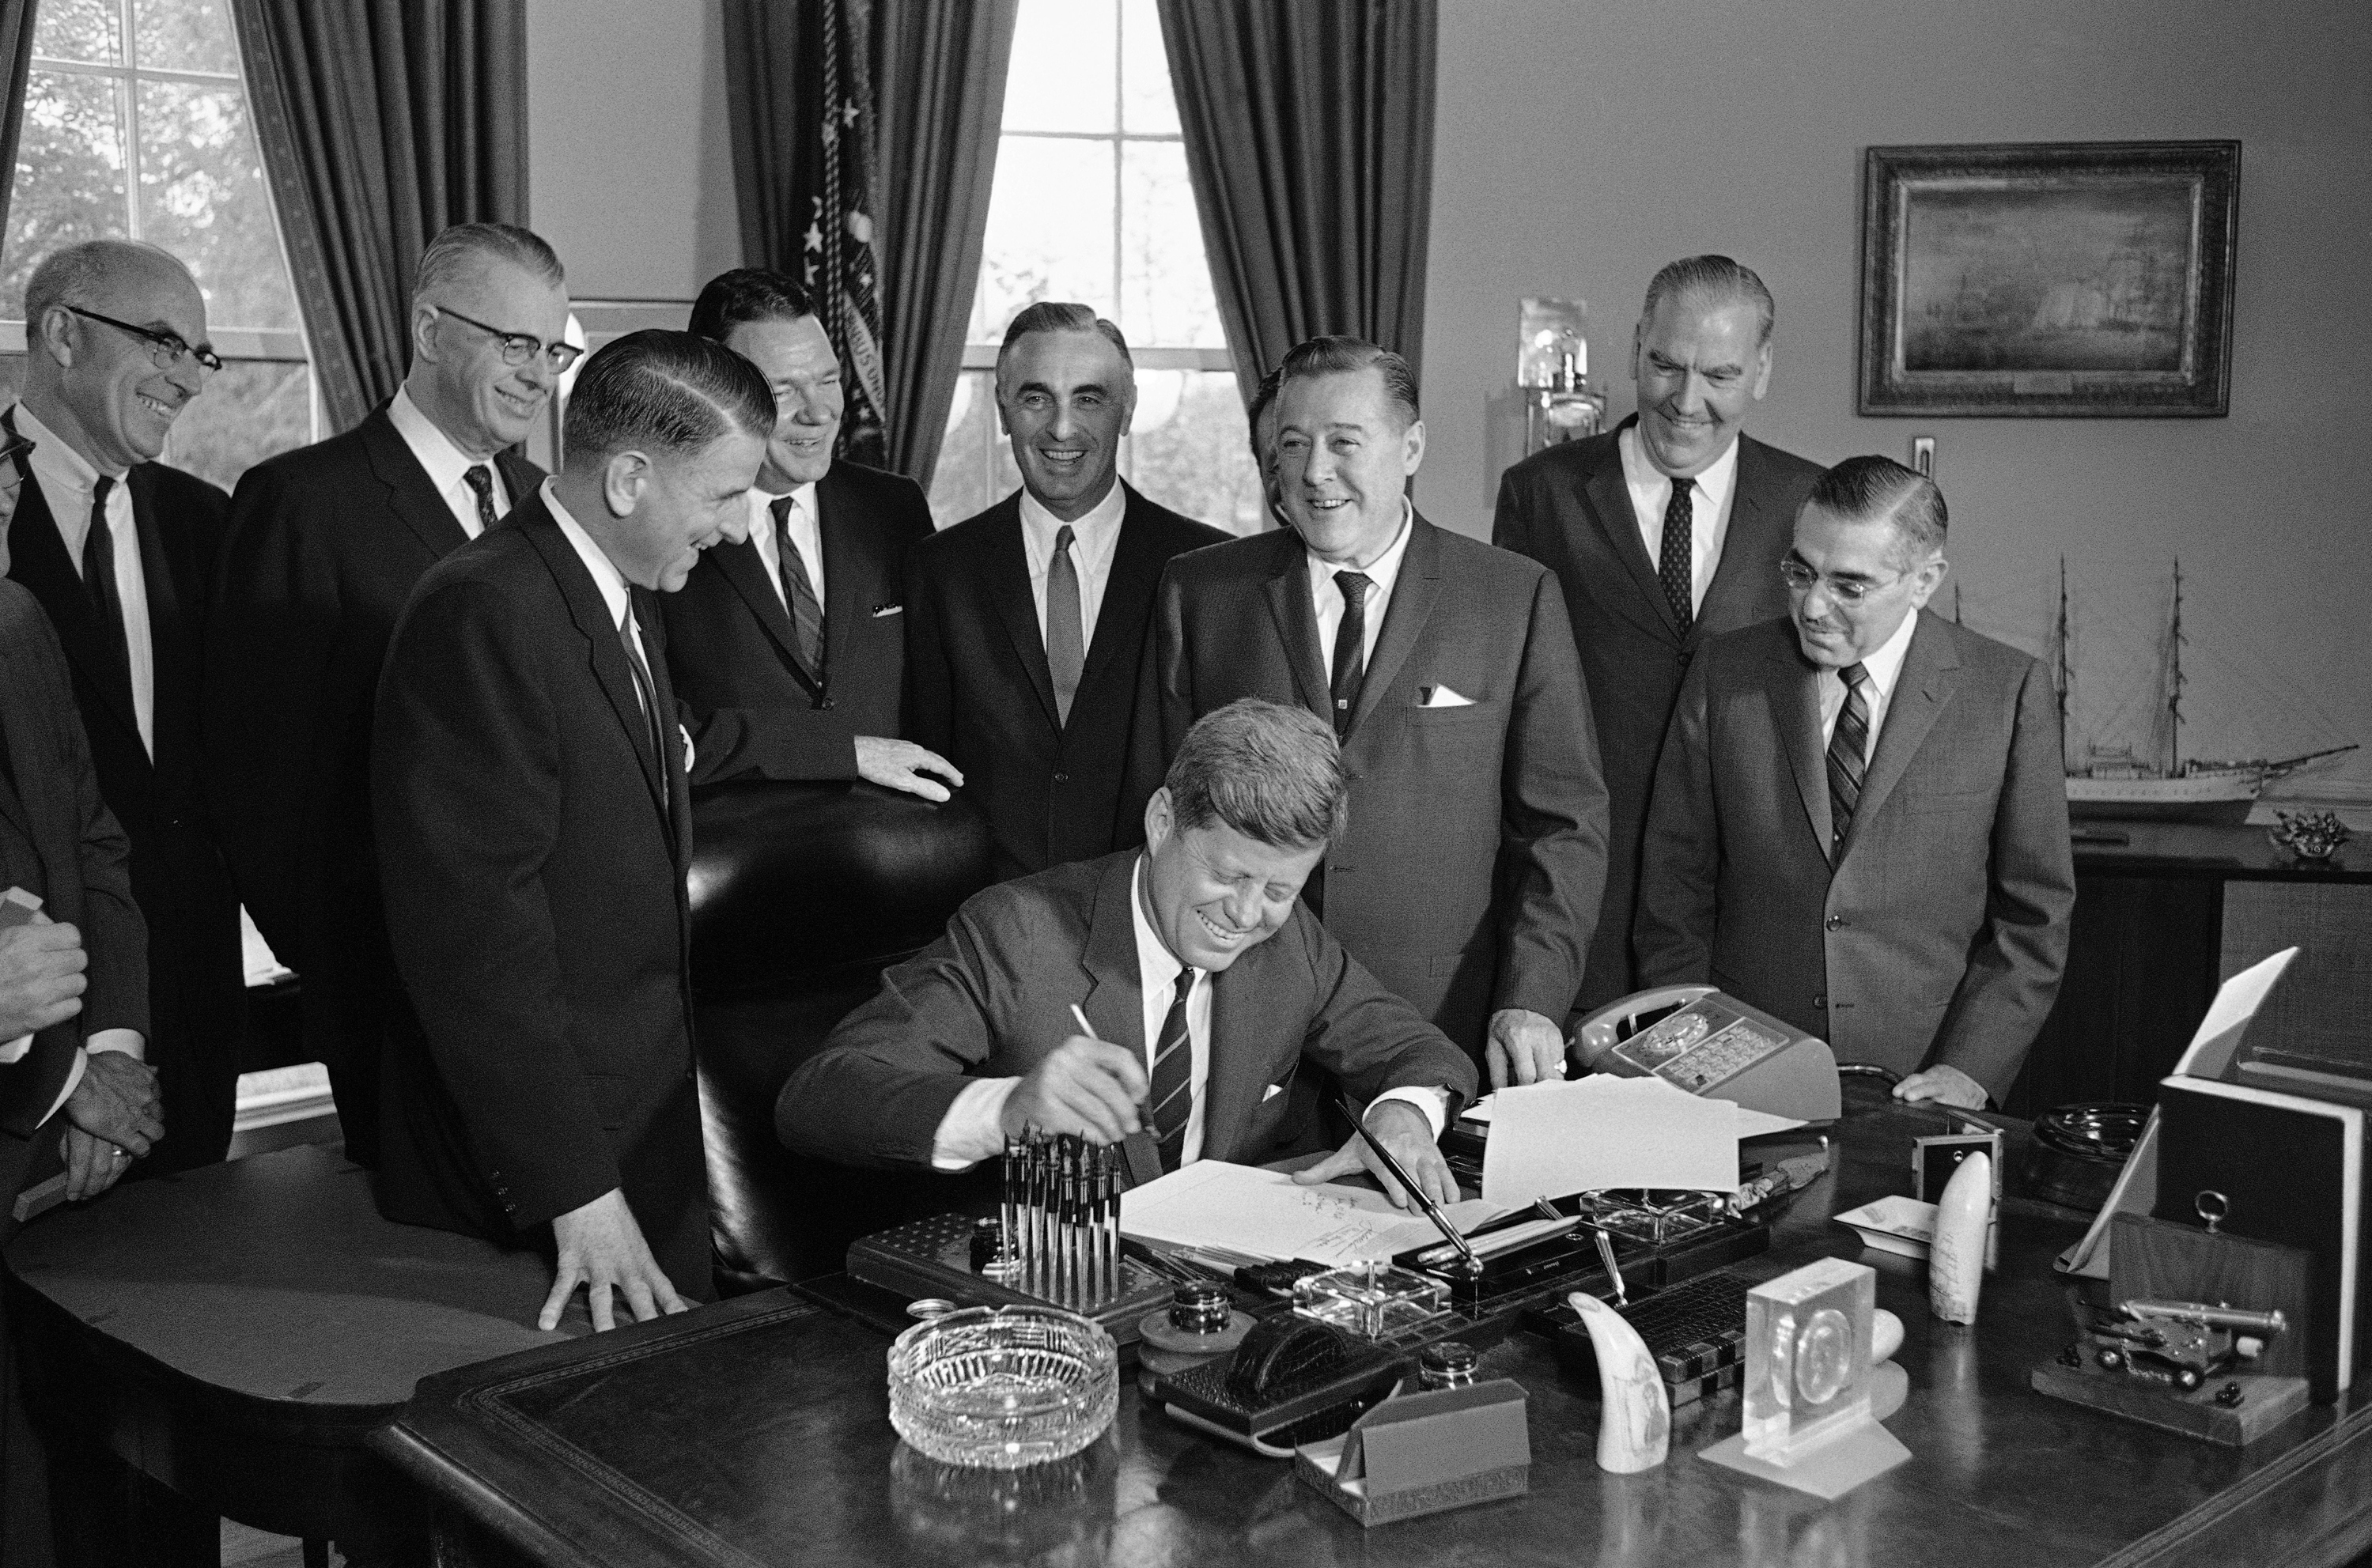 <div class='meta'><div class='origin-logo' data-origin='none'></div><span class='caption-text' data-credit='Harvey Georges/AP Photo'>President John F. Kennedy signs into law a bill providing federal aid for an expansion of educational television stations all over the nation. May 1, 1962 at the White House.</span></div>